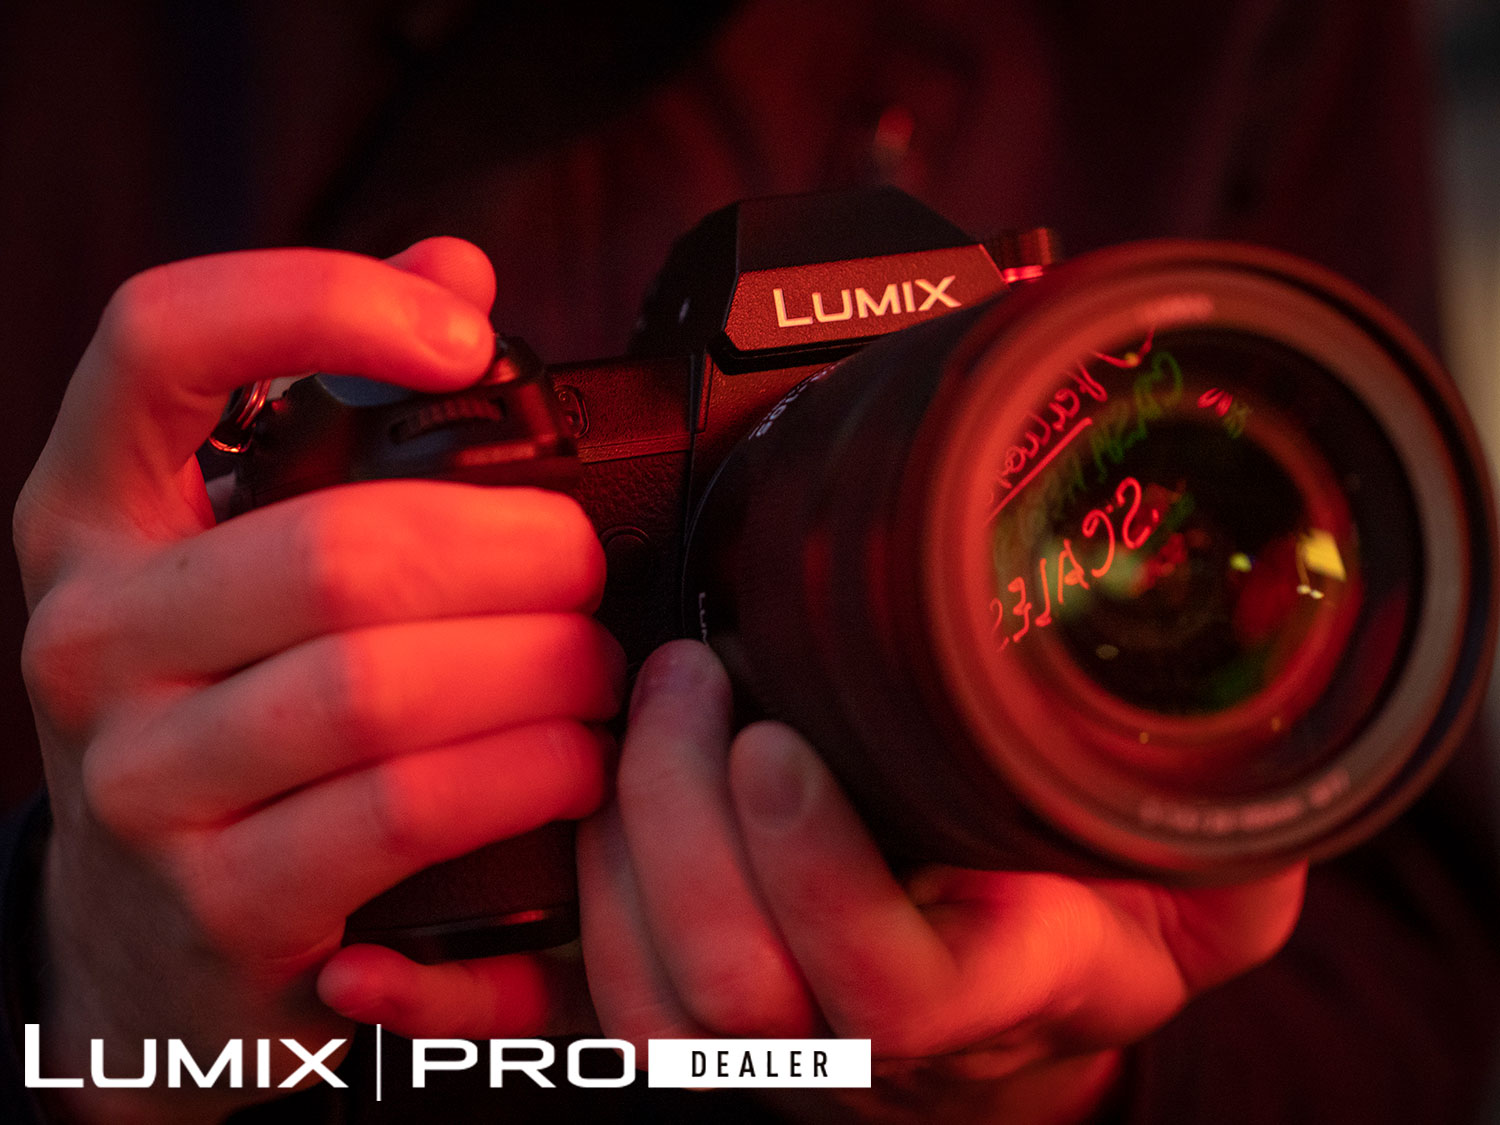 Get Hands On with the latest from Panasonic